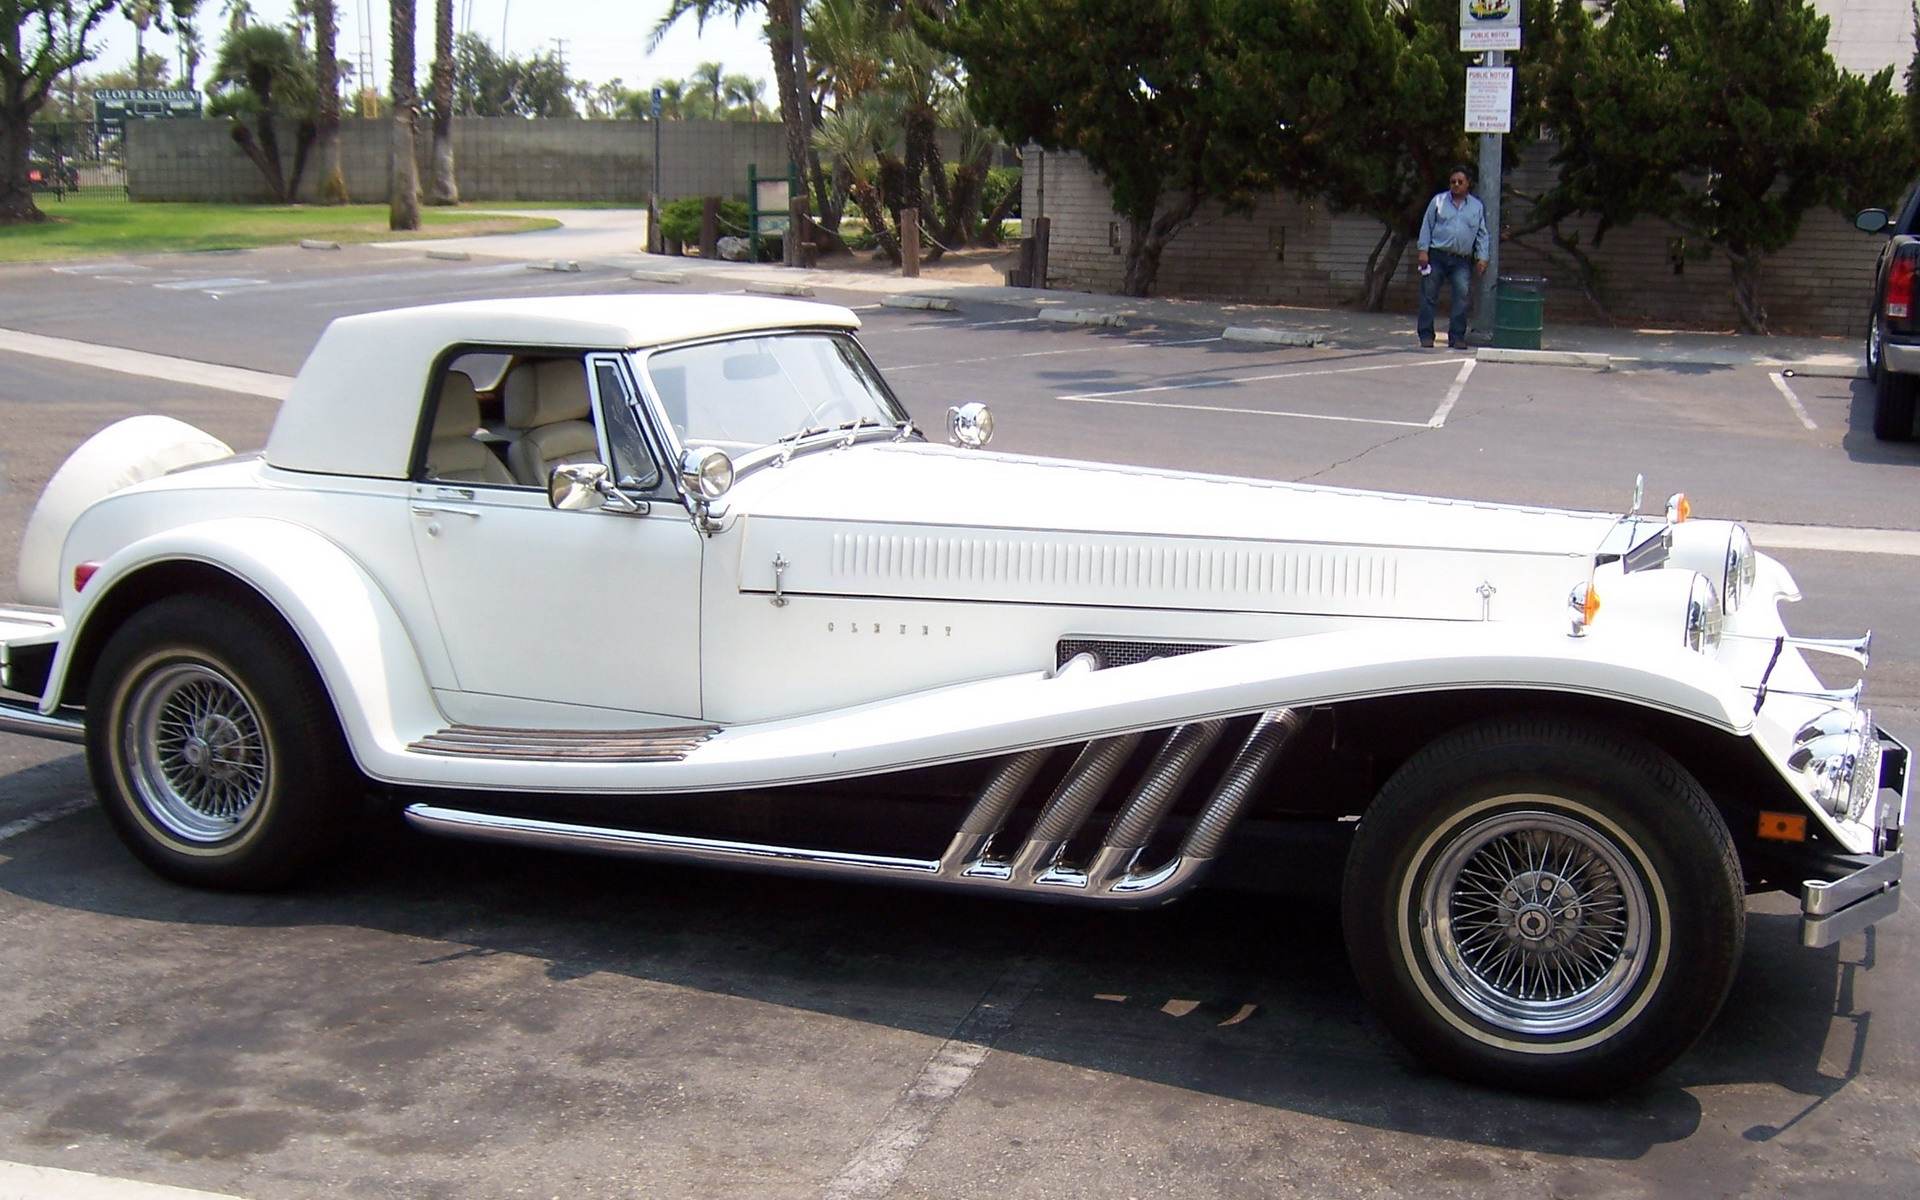 Series1car168 likewise Mclaren 540c Coupe Shunning U S Market also 1977 Buick Regal Landau as well Buy Porsche 911 Classic together with 1968 Mercedes Benz 280sl. on classic cars that we sold